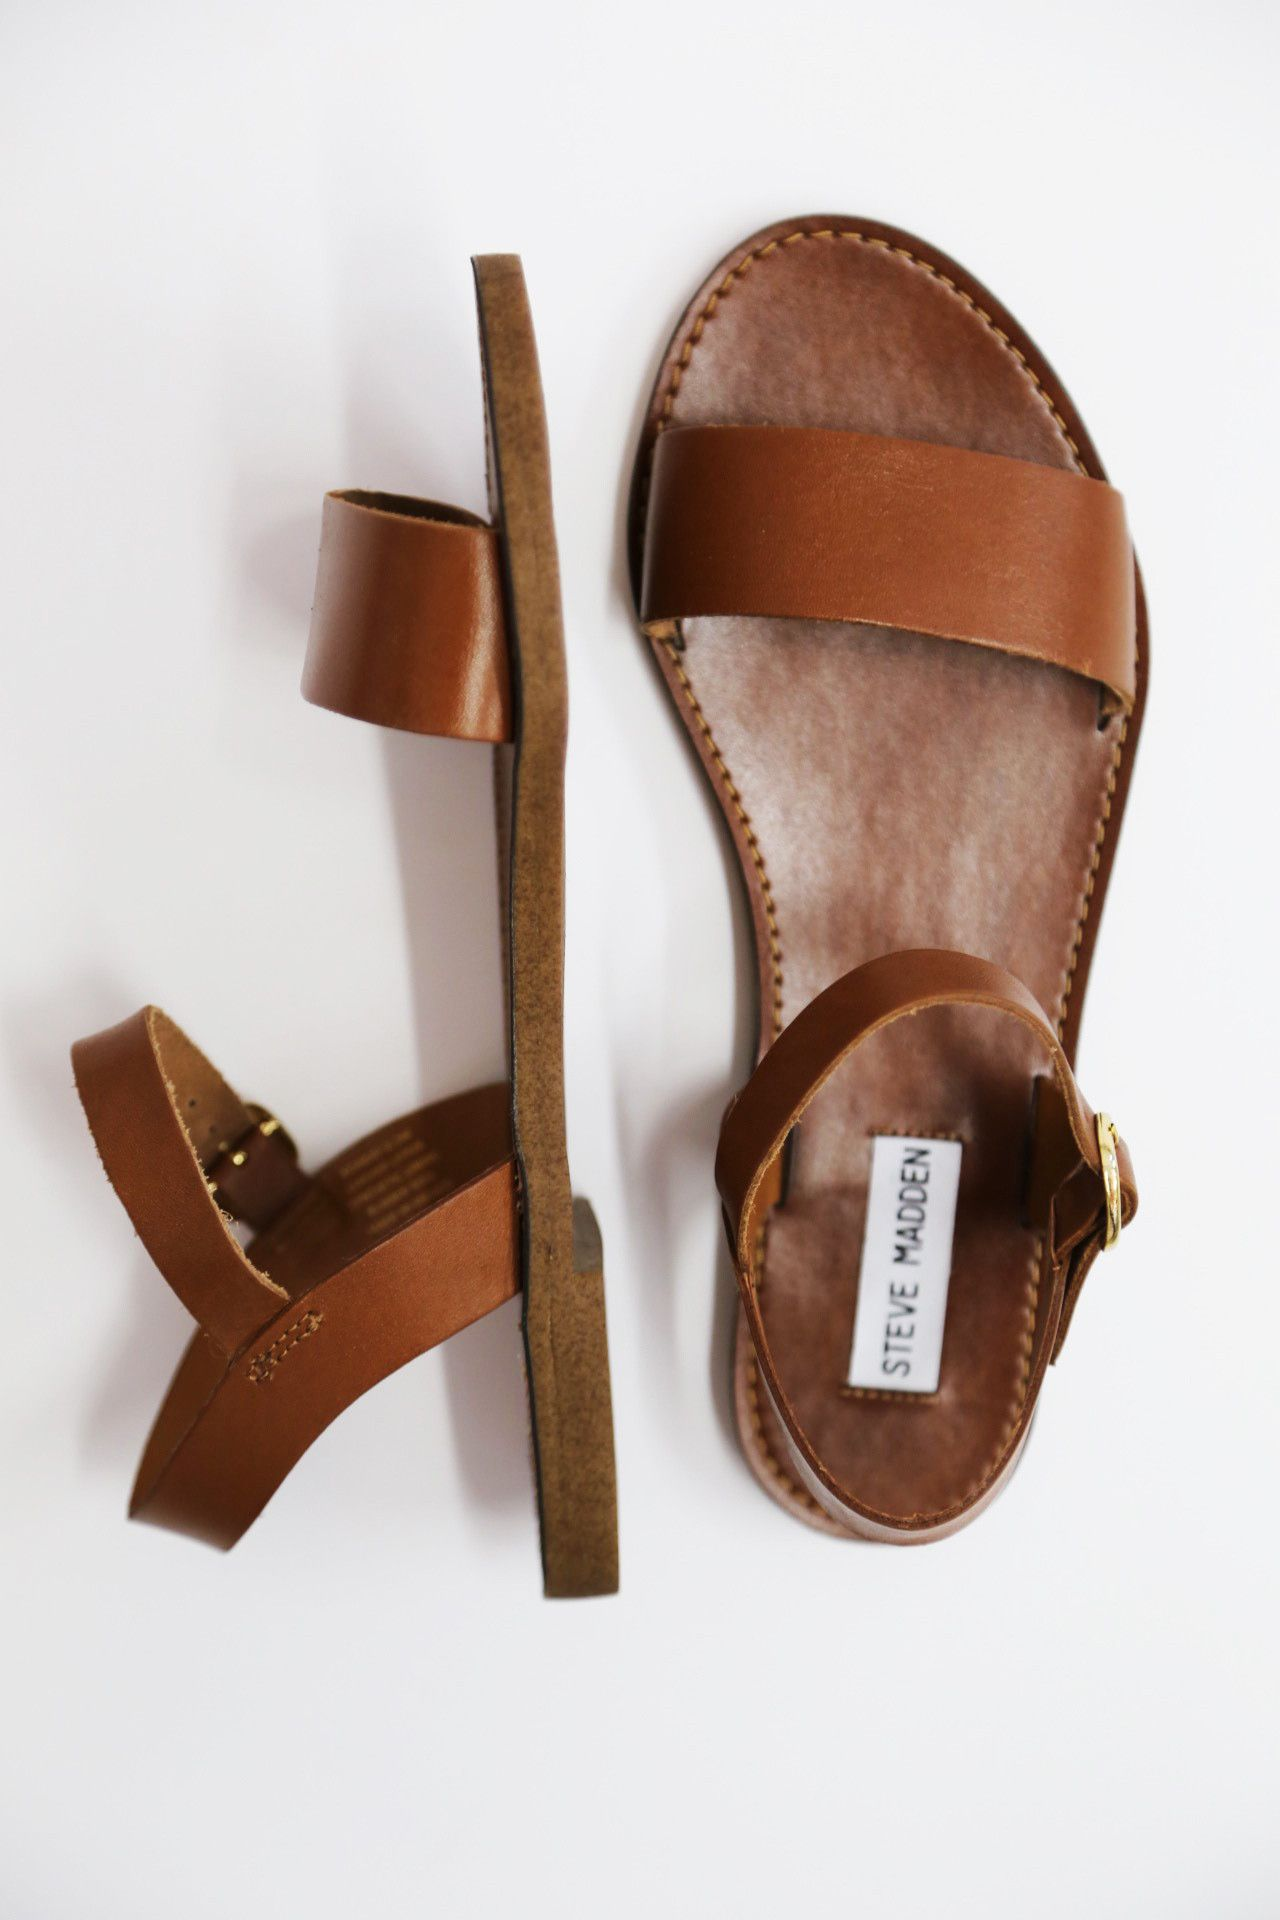 6f9efa51b Donddi By Steve Madden  Cognac  - The Rage - 1 Tan Sandals Outfit